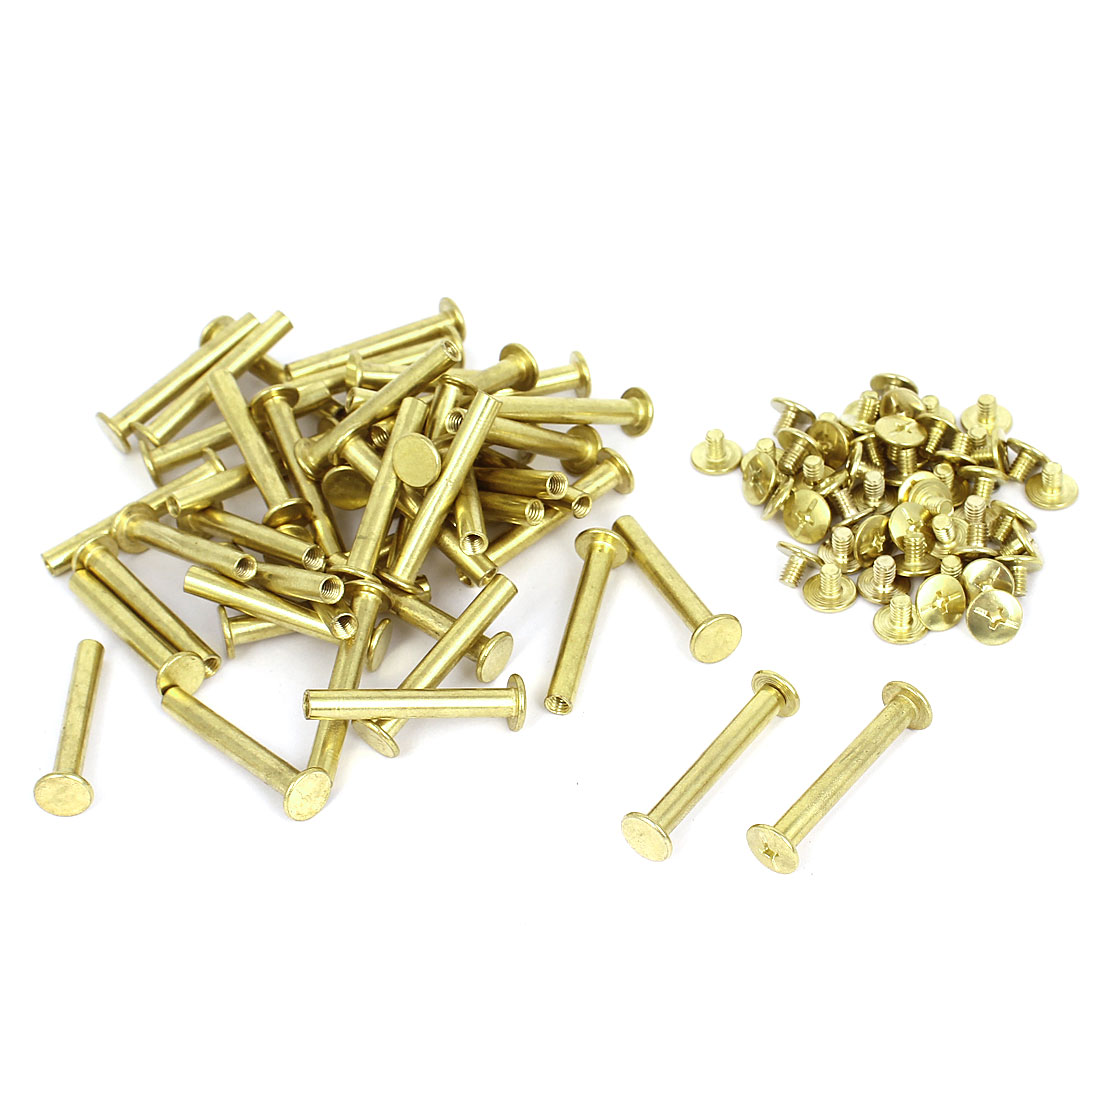 5mmx35mm Brass Plated Binding Chicago Screw Post for Scrapbook Photo Albums 50pcs